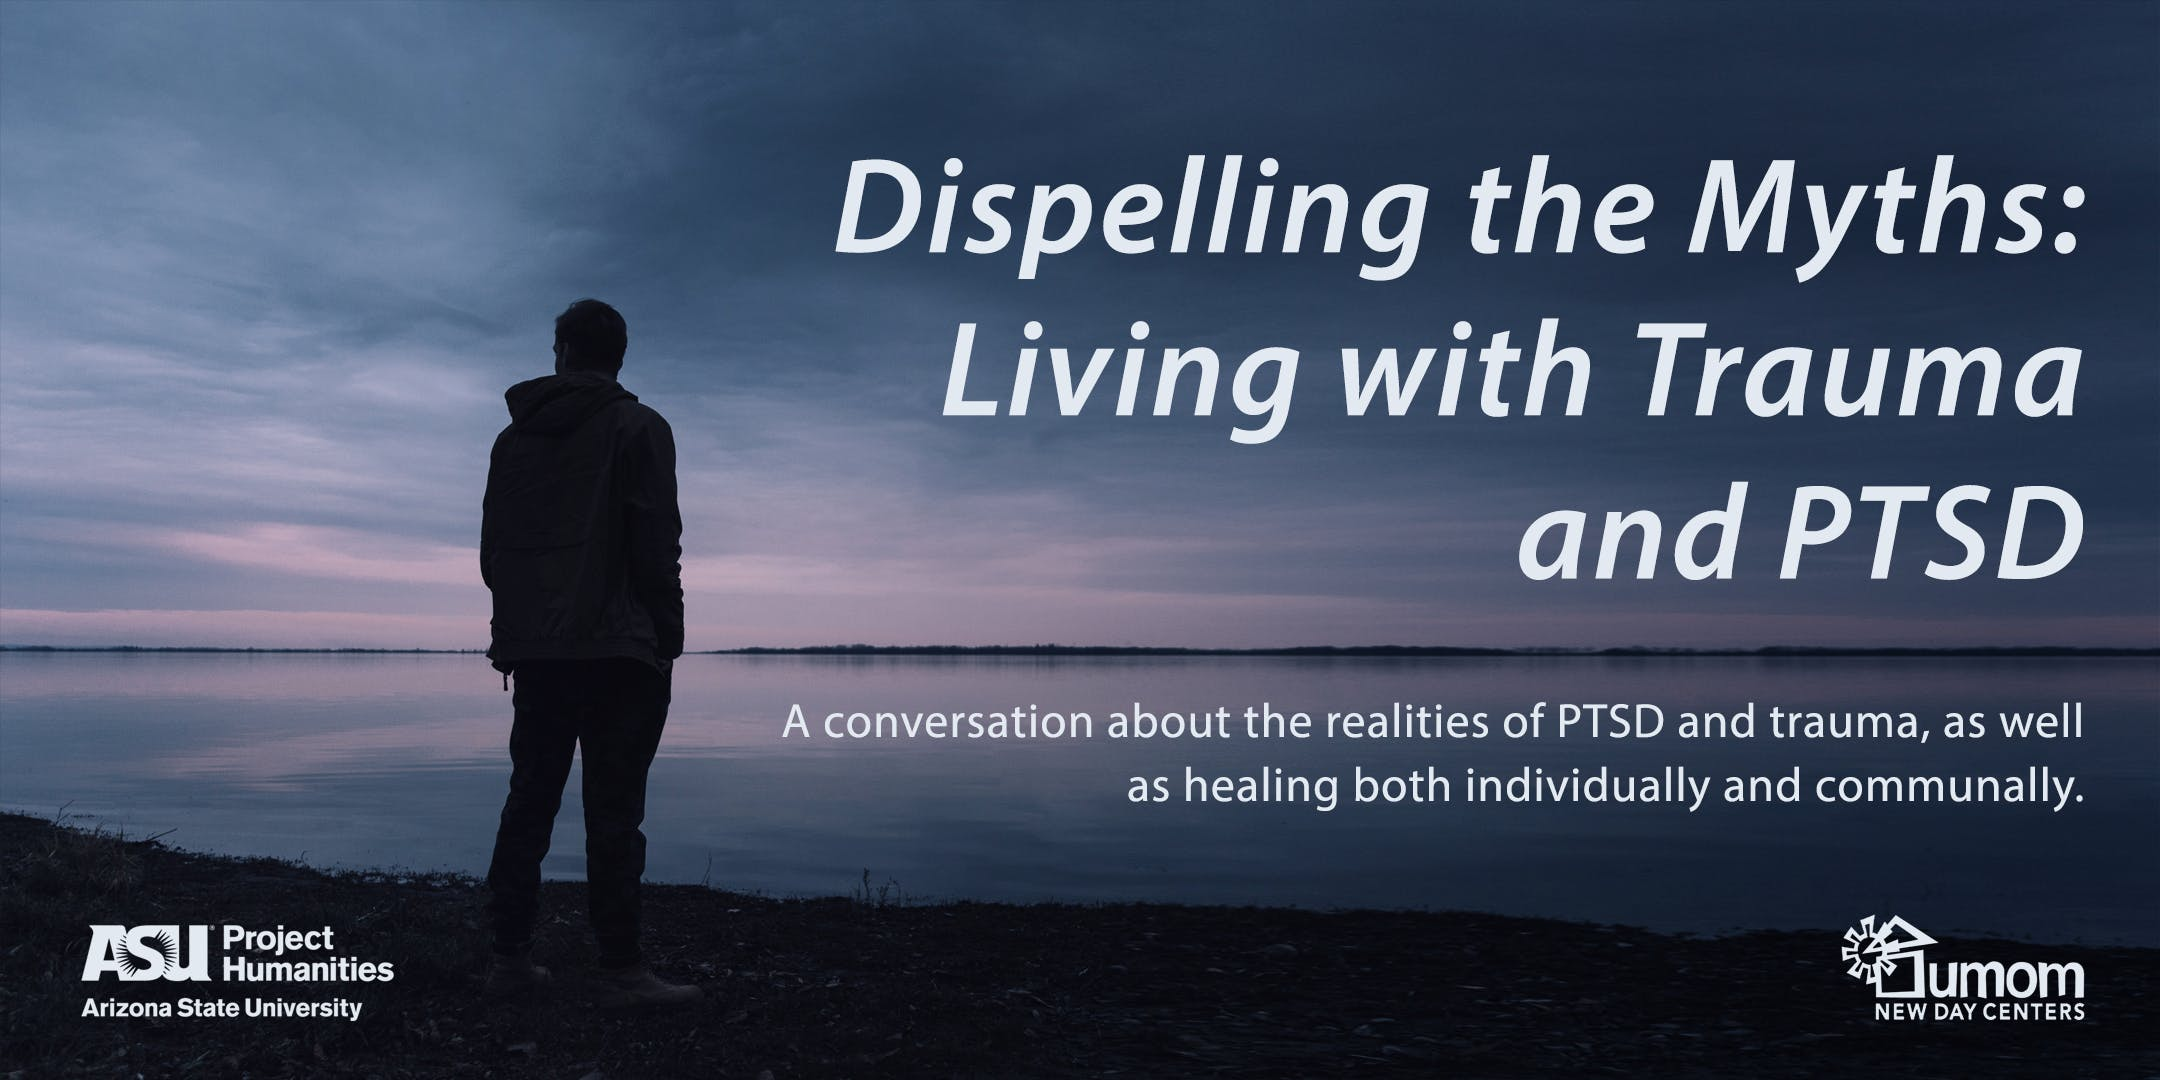 Dispelling the Myths: Living with Trauma and PTSD